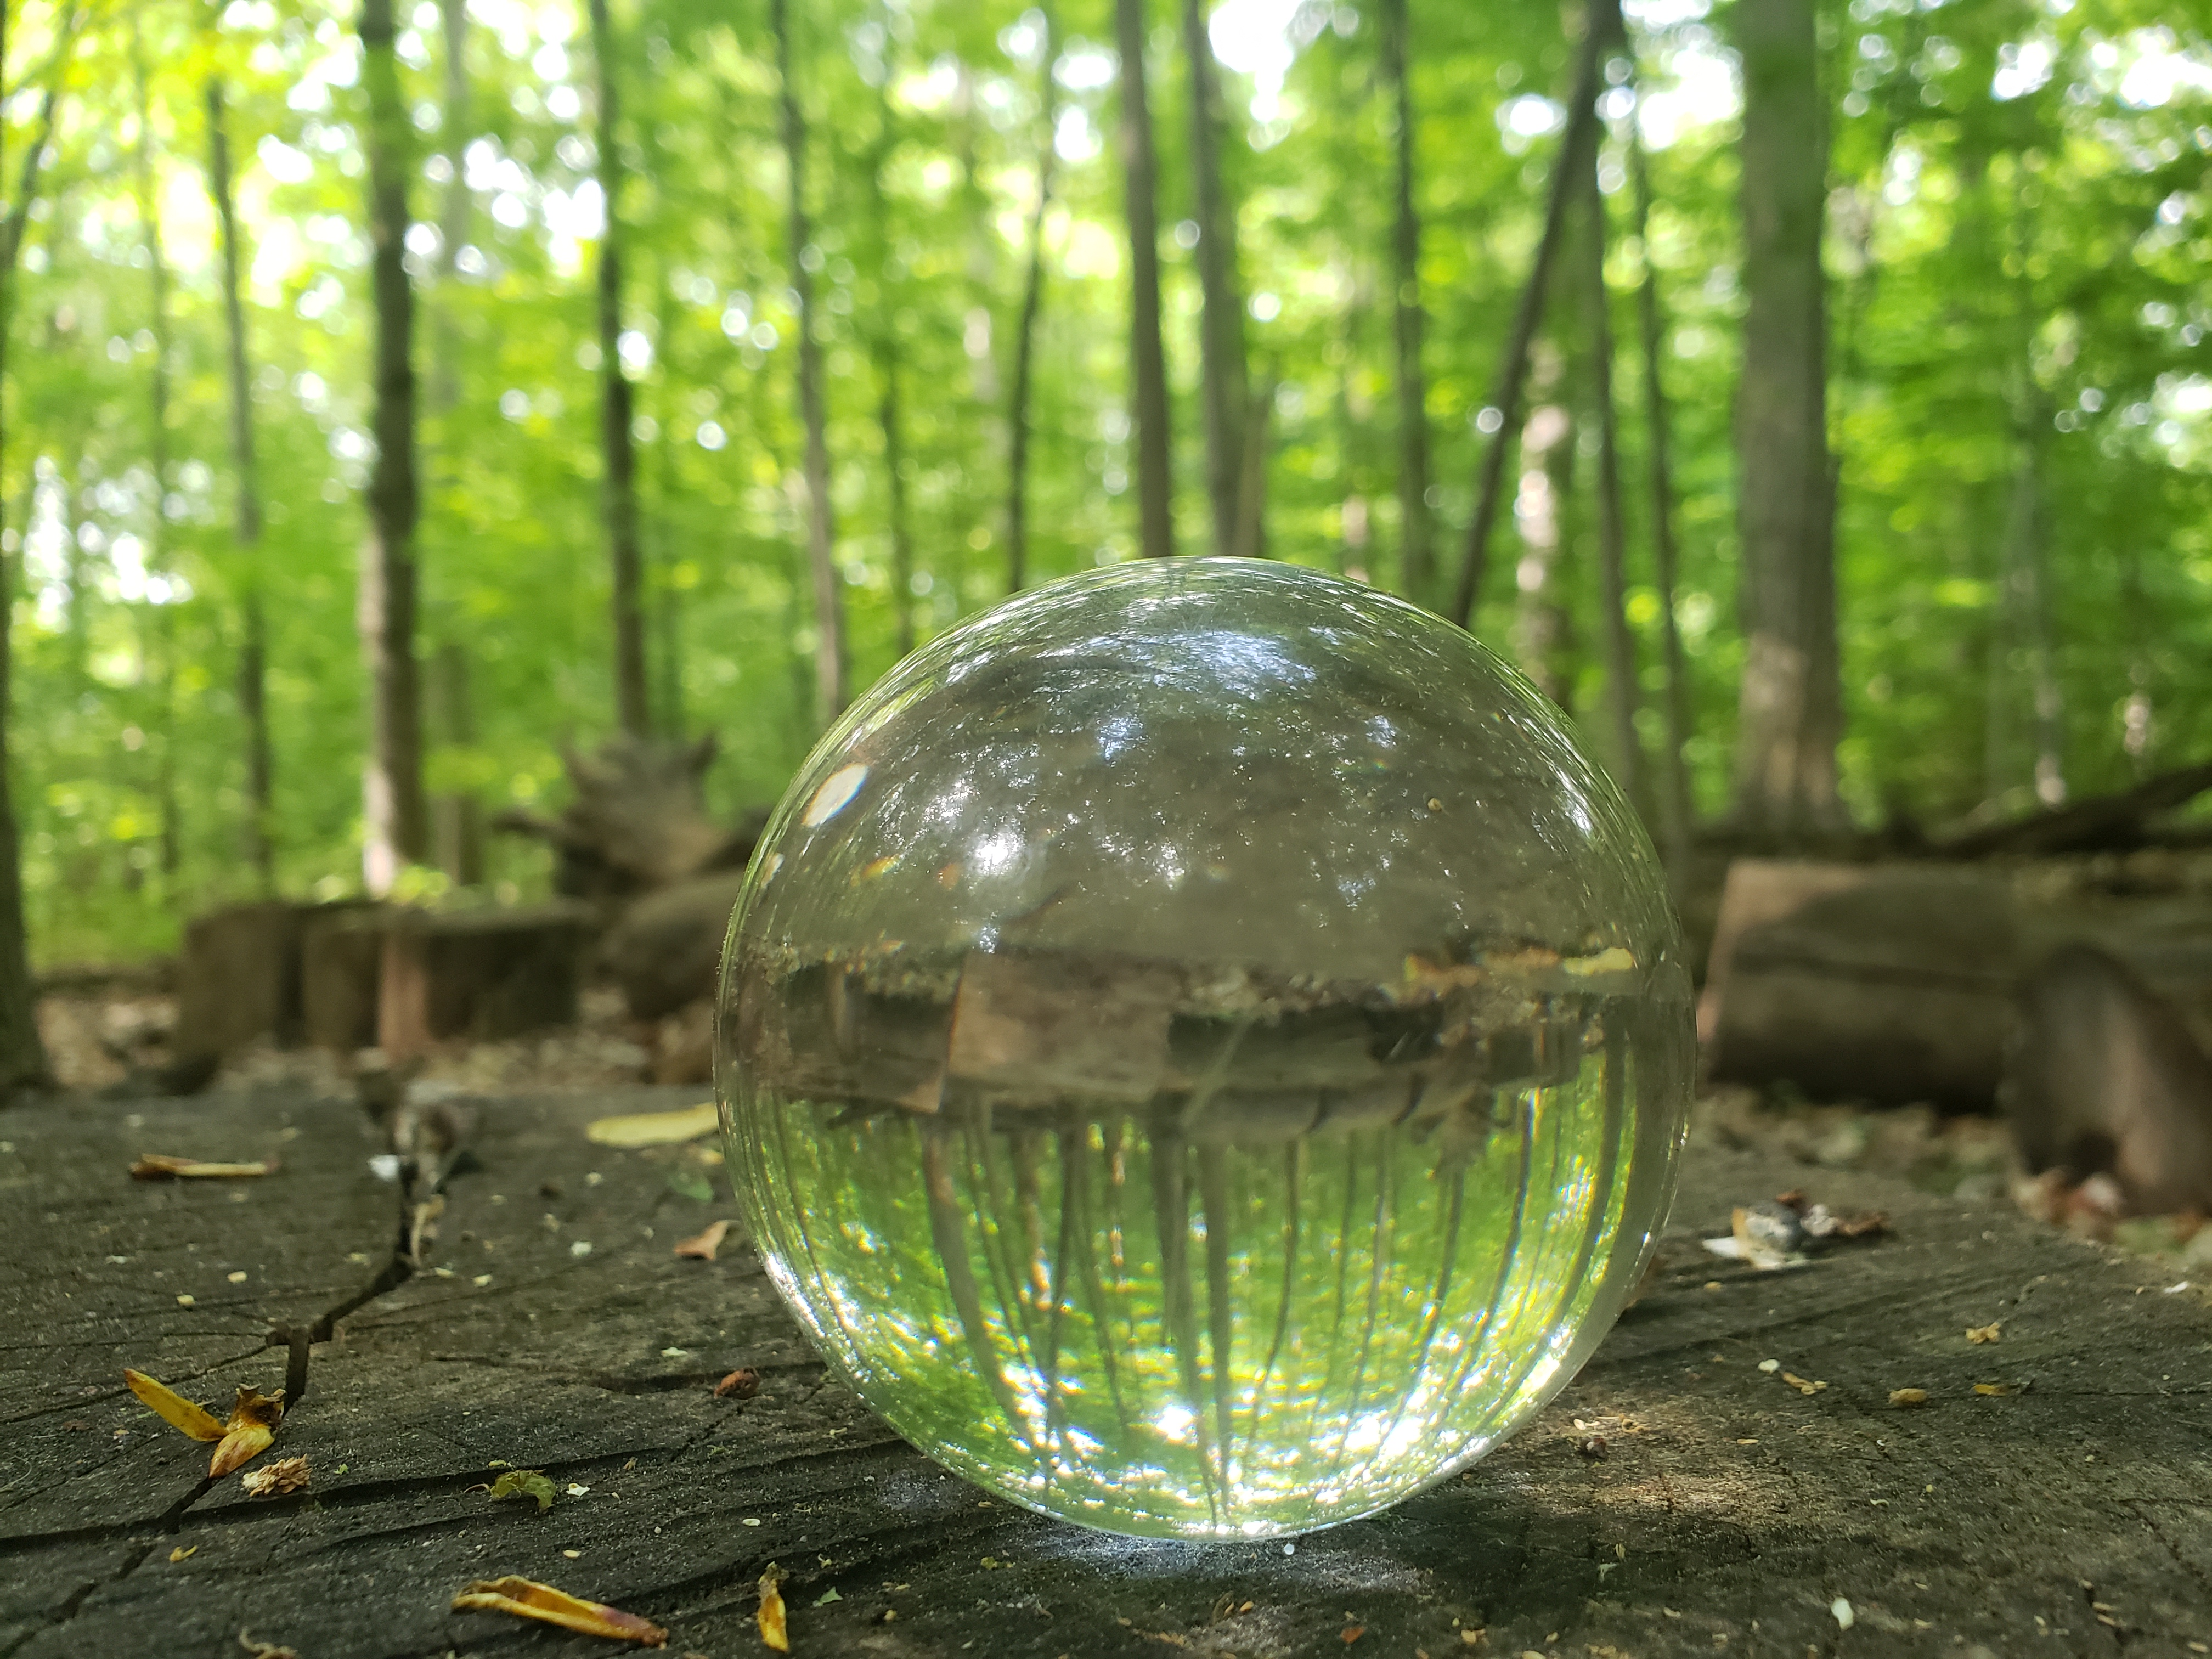 A lens ball capturing tress in a forest